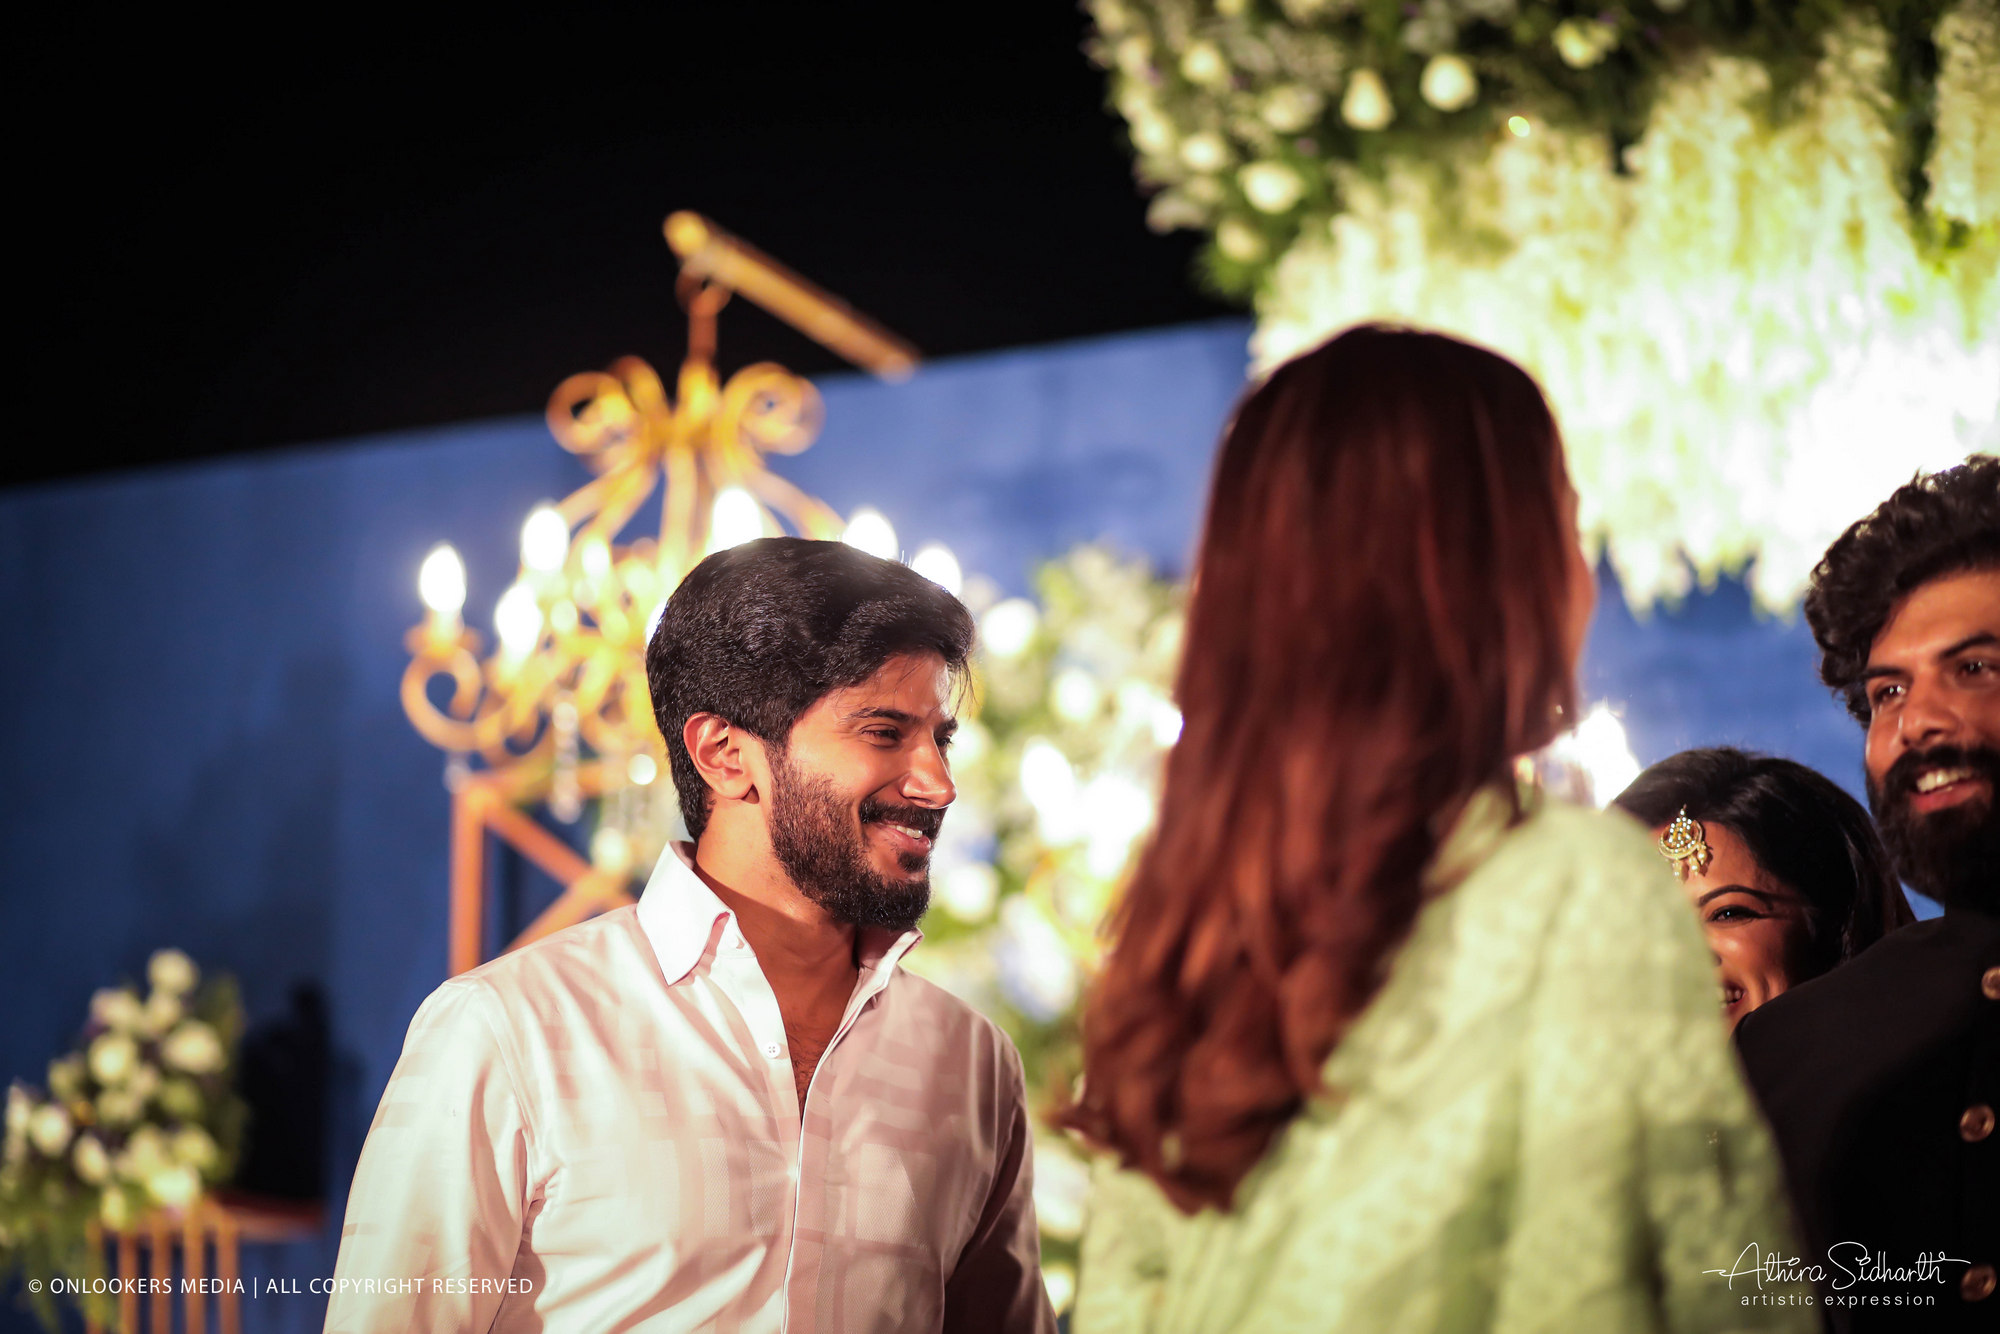 sunny Wayne wedding reception photos ,sunny Wayne wedding reception stills ,sunny Wayne wedding receptioimages ,sunny Wayne wedding stills ,sunny Wayne wife ,sunny Wayne wife dance ,sunny Wayne family photos ,sunny Wayne couple stills